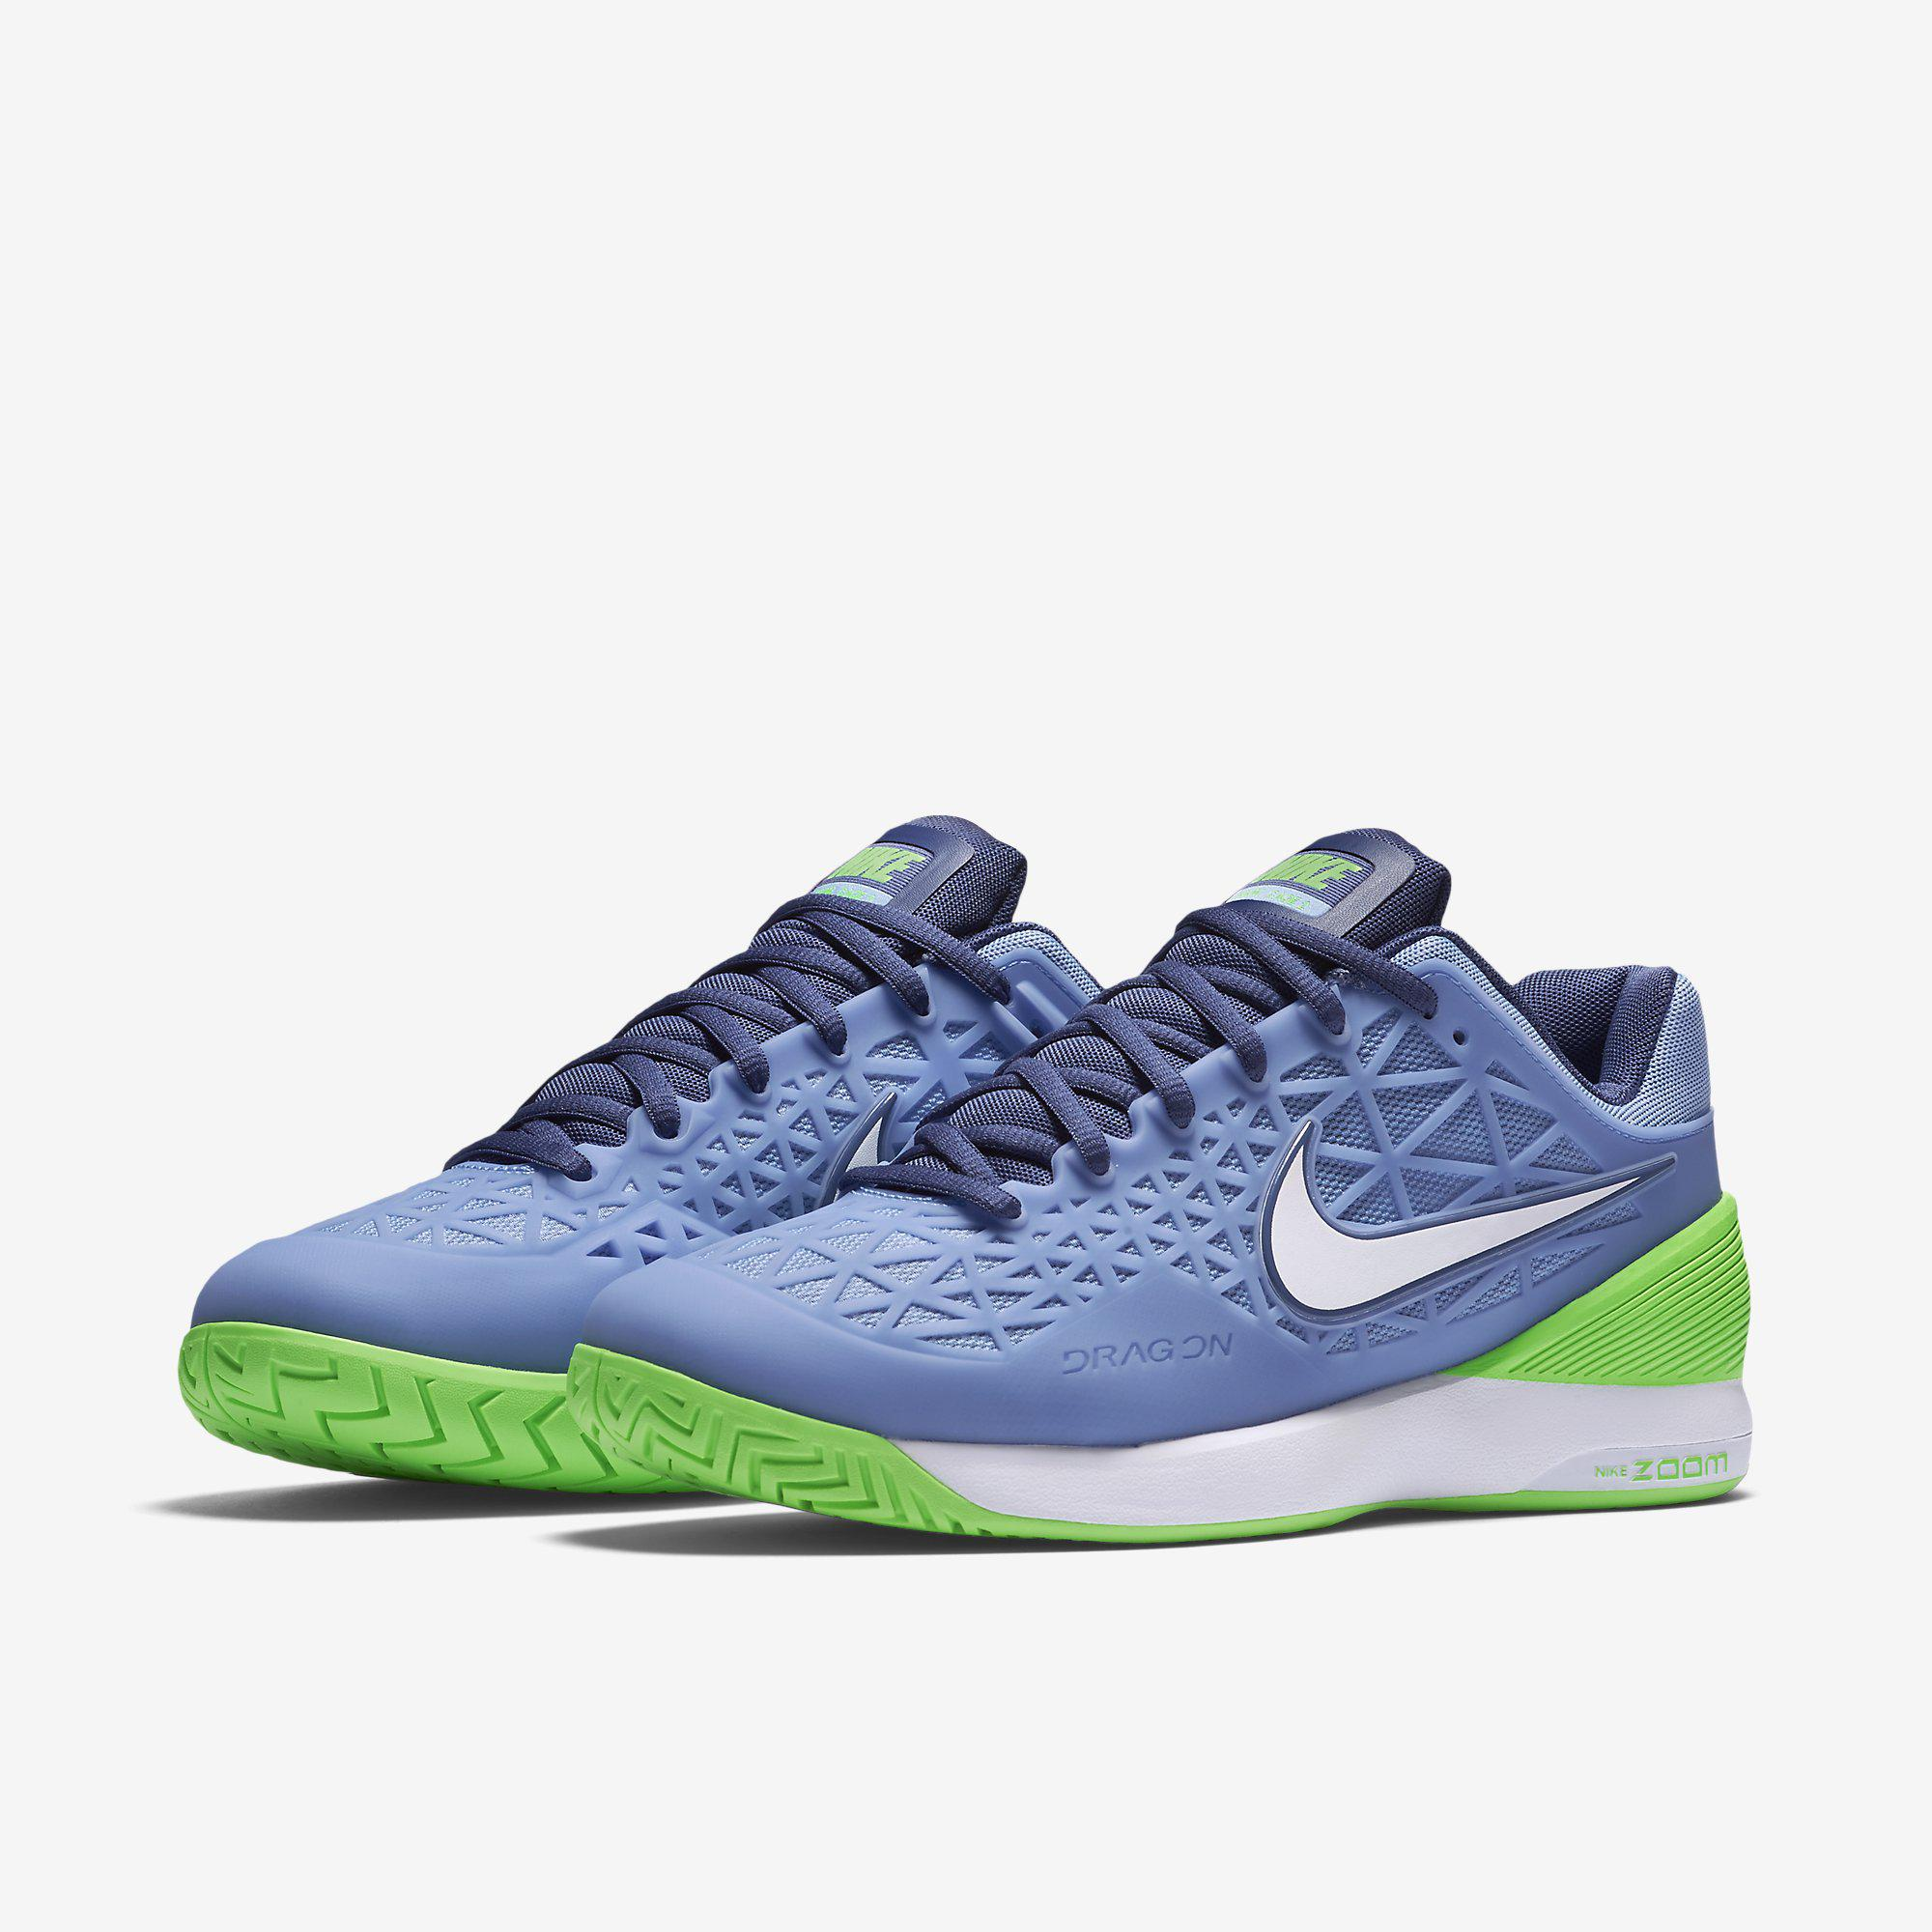 272e2dbdab Nike Womens Zoom Cage 2 Tennis Shoes - Blue White Green - Tennisnuts.com